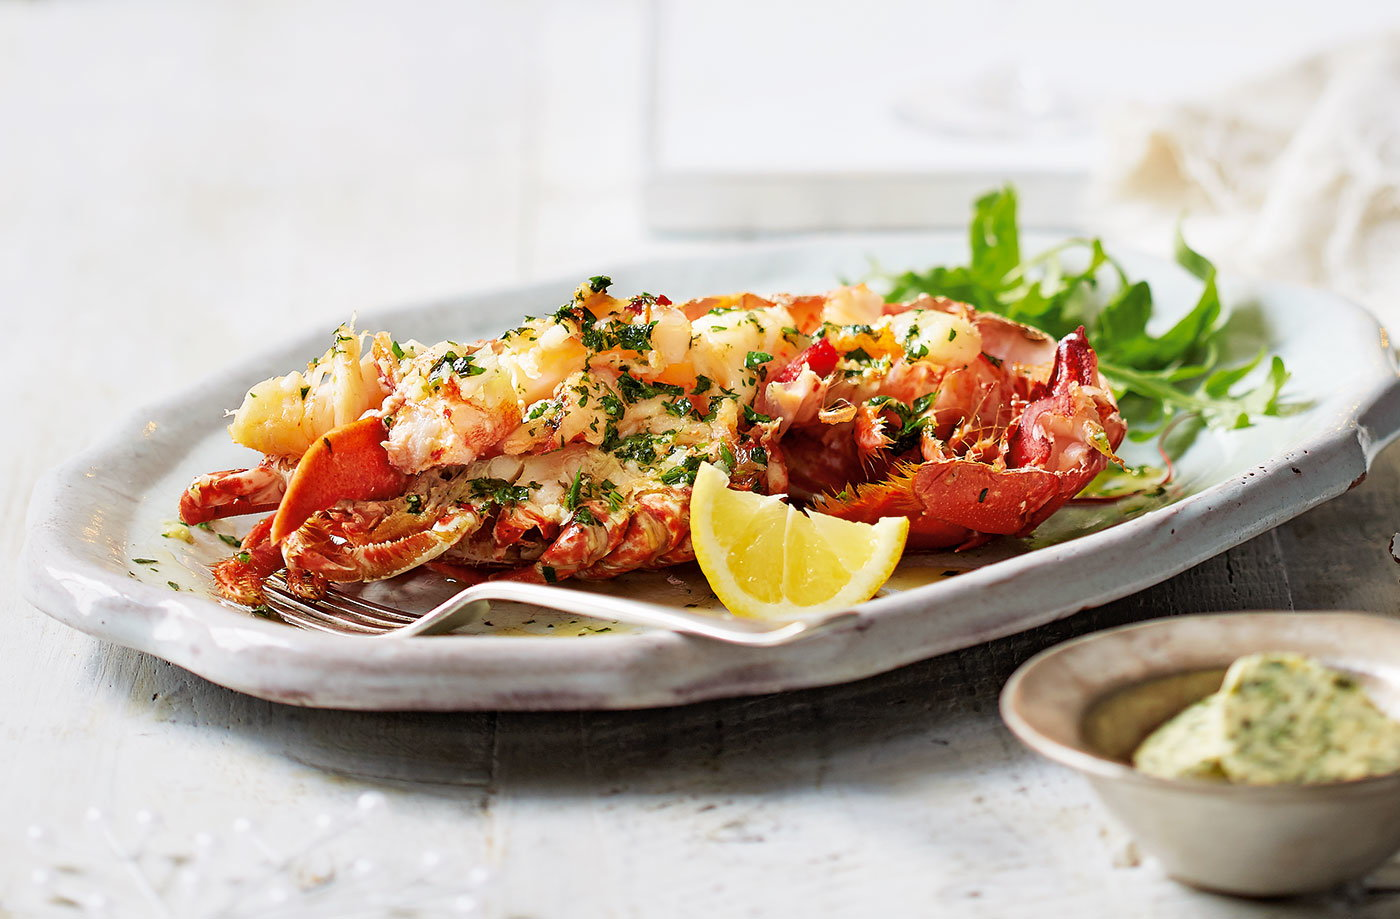 Grilled lobster with garlic and herb butter recipe